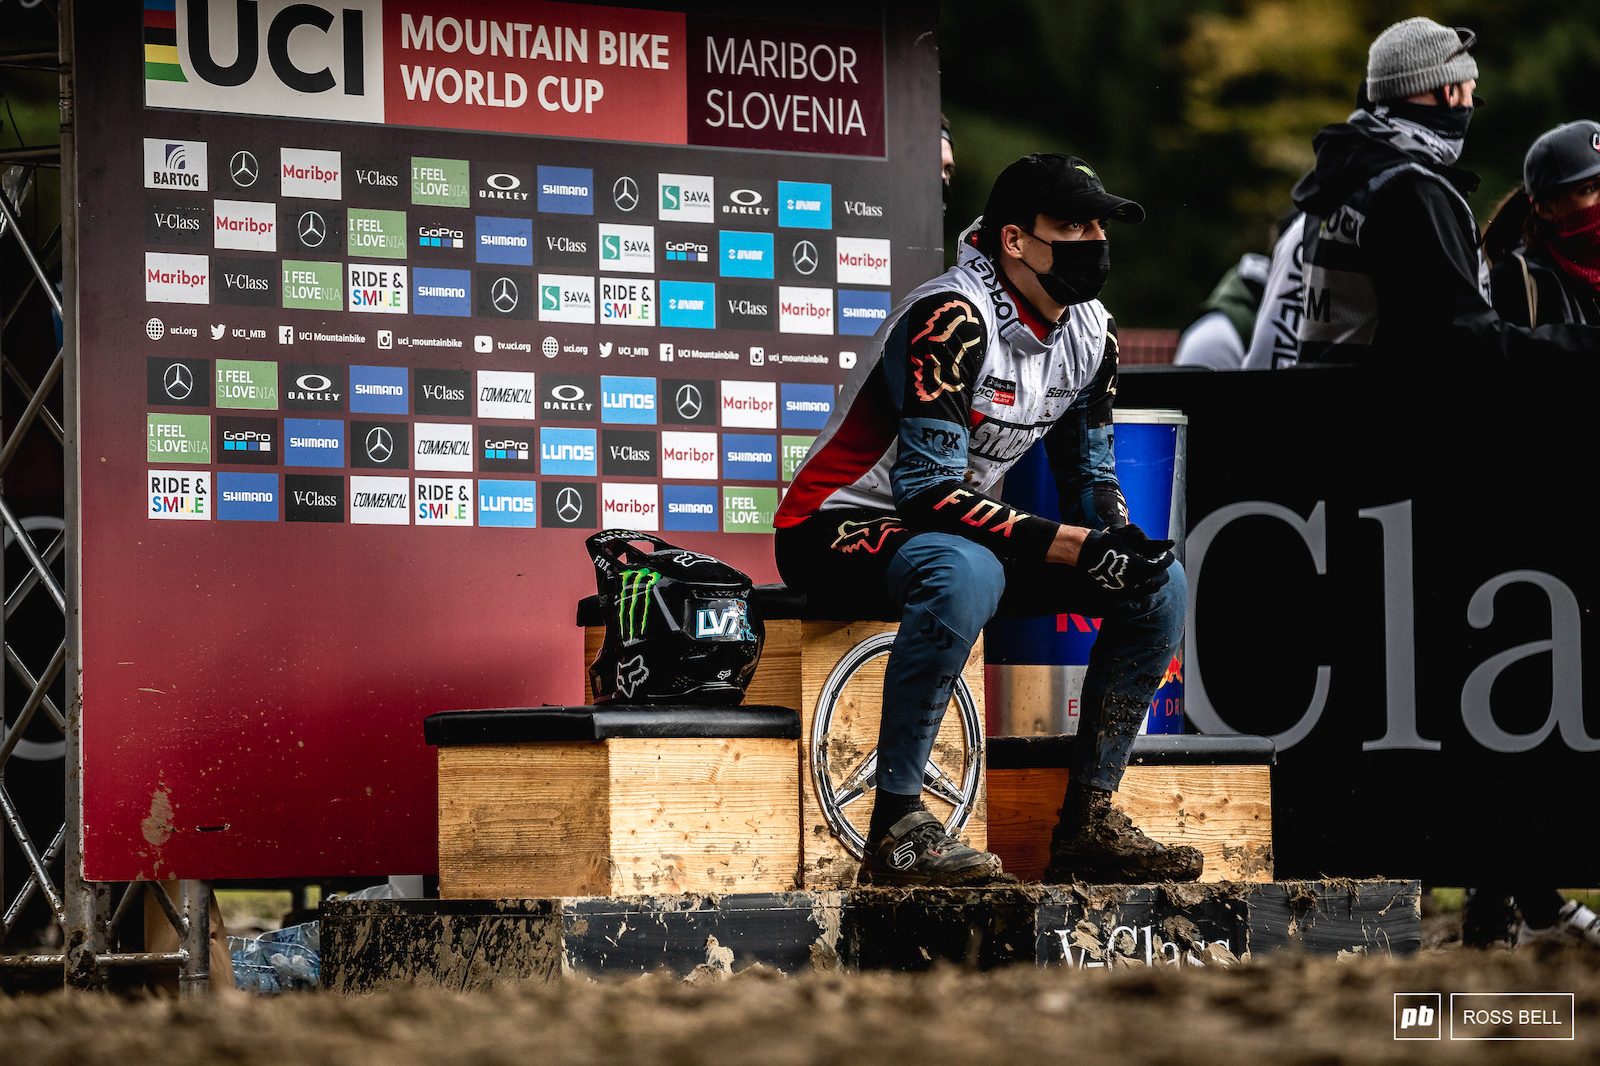 The nervous final moments for Loris Vergier as he awaits his fate. Win number 2 of the week.